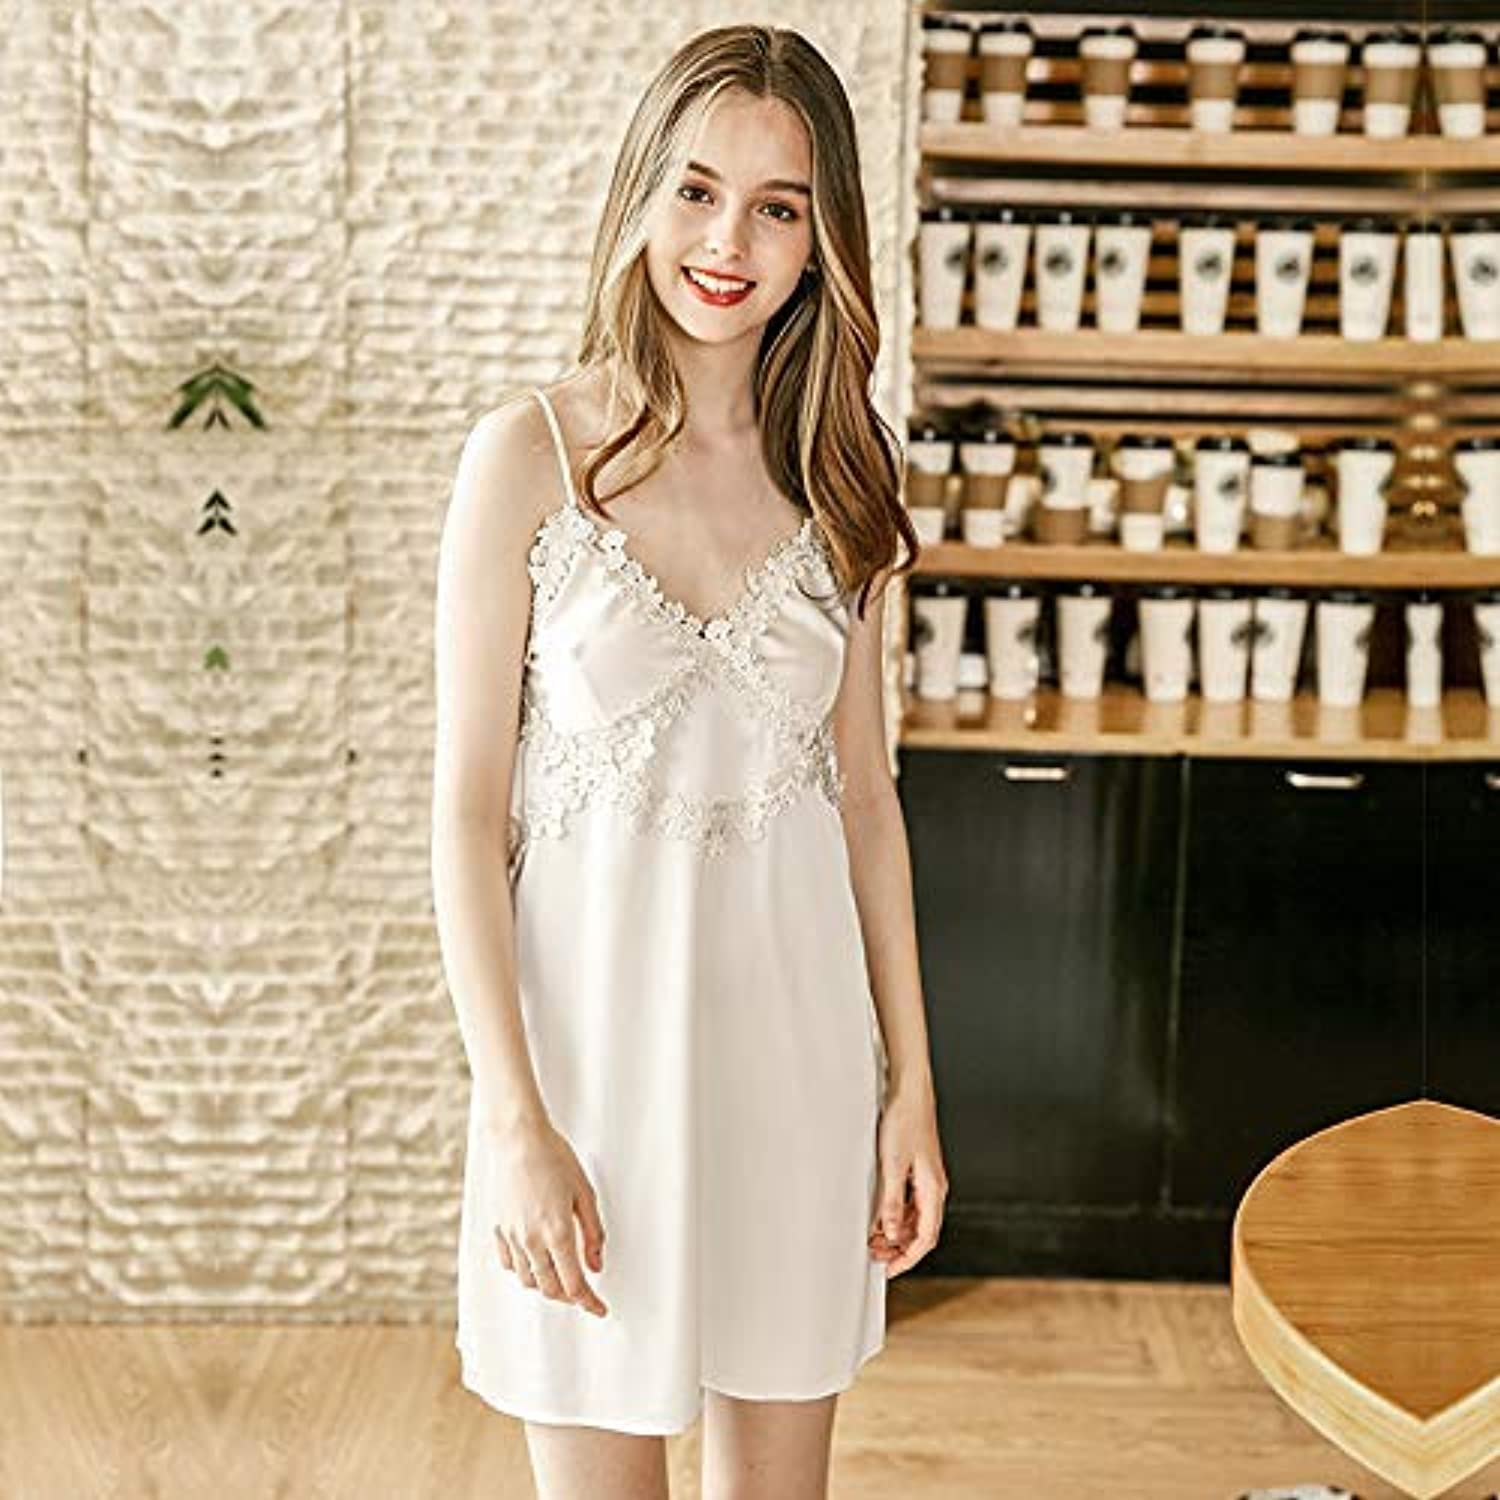 Nightshirt, Simulation Silk Sexy Nightdress Ladies Summer Sexy lace Home Service (color   White, Size   M) (color   White, Size   Medium)